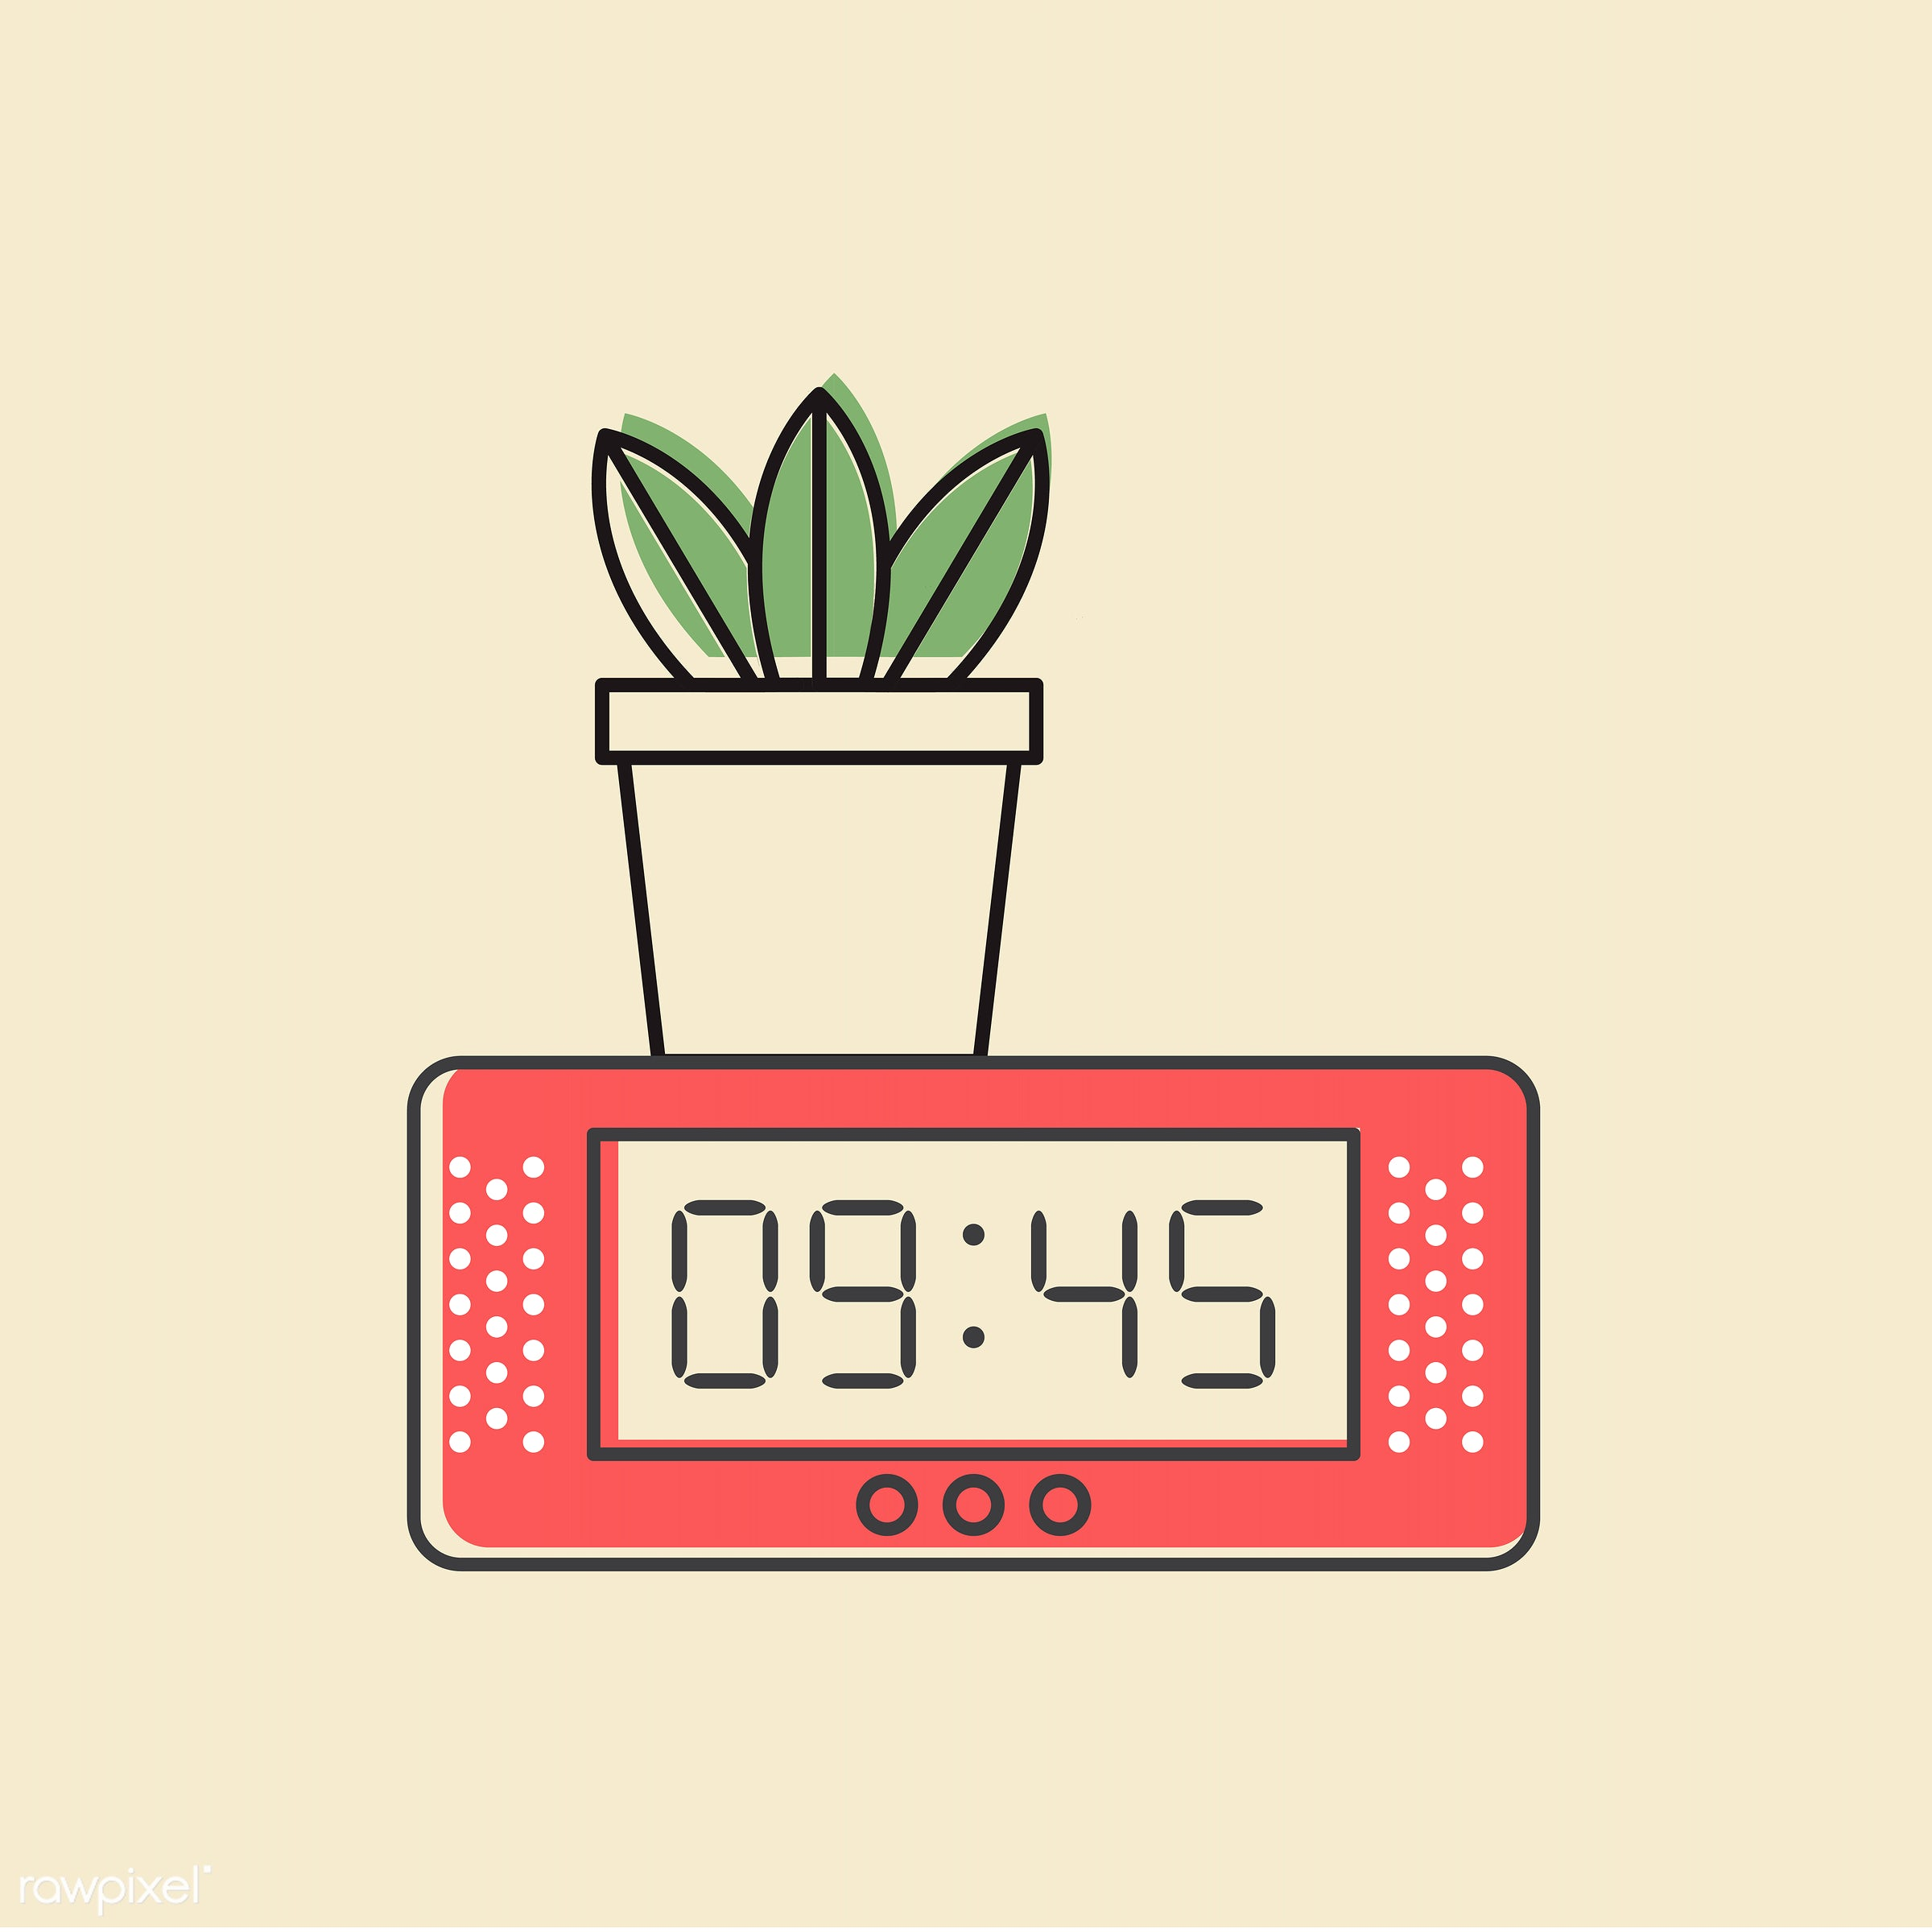 Vector of digital clock icon - alarm, clock, design, digit, element, graphic, icon, illustration, object, symbol, time,...